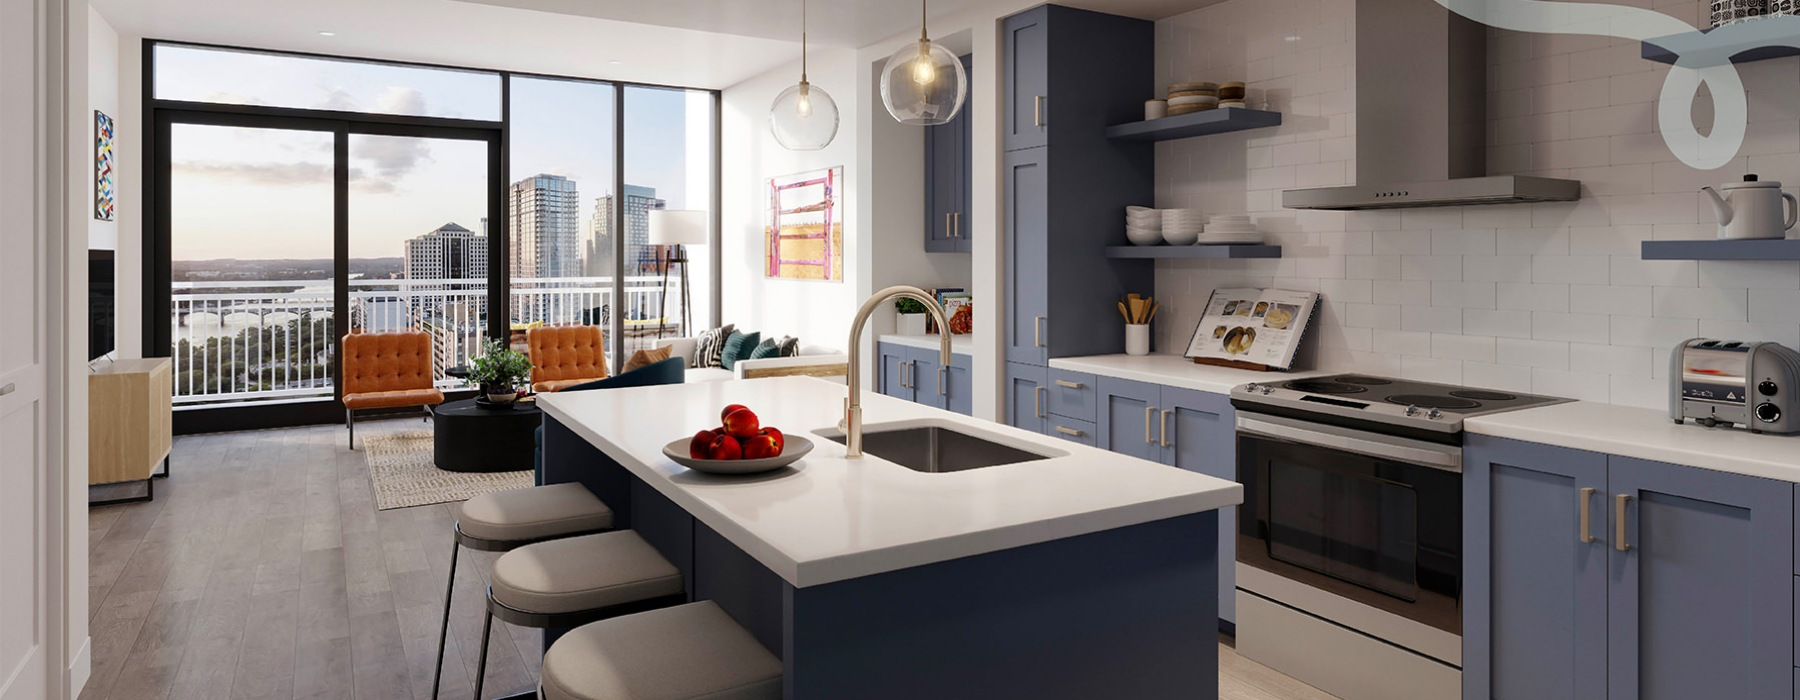 edited graphic of a spacious kitchen with ample natural lighting